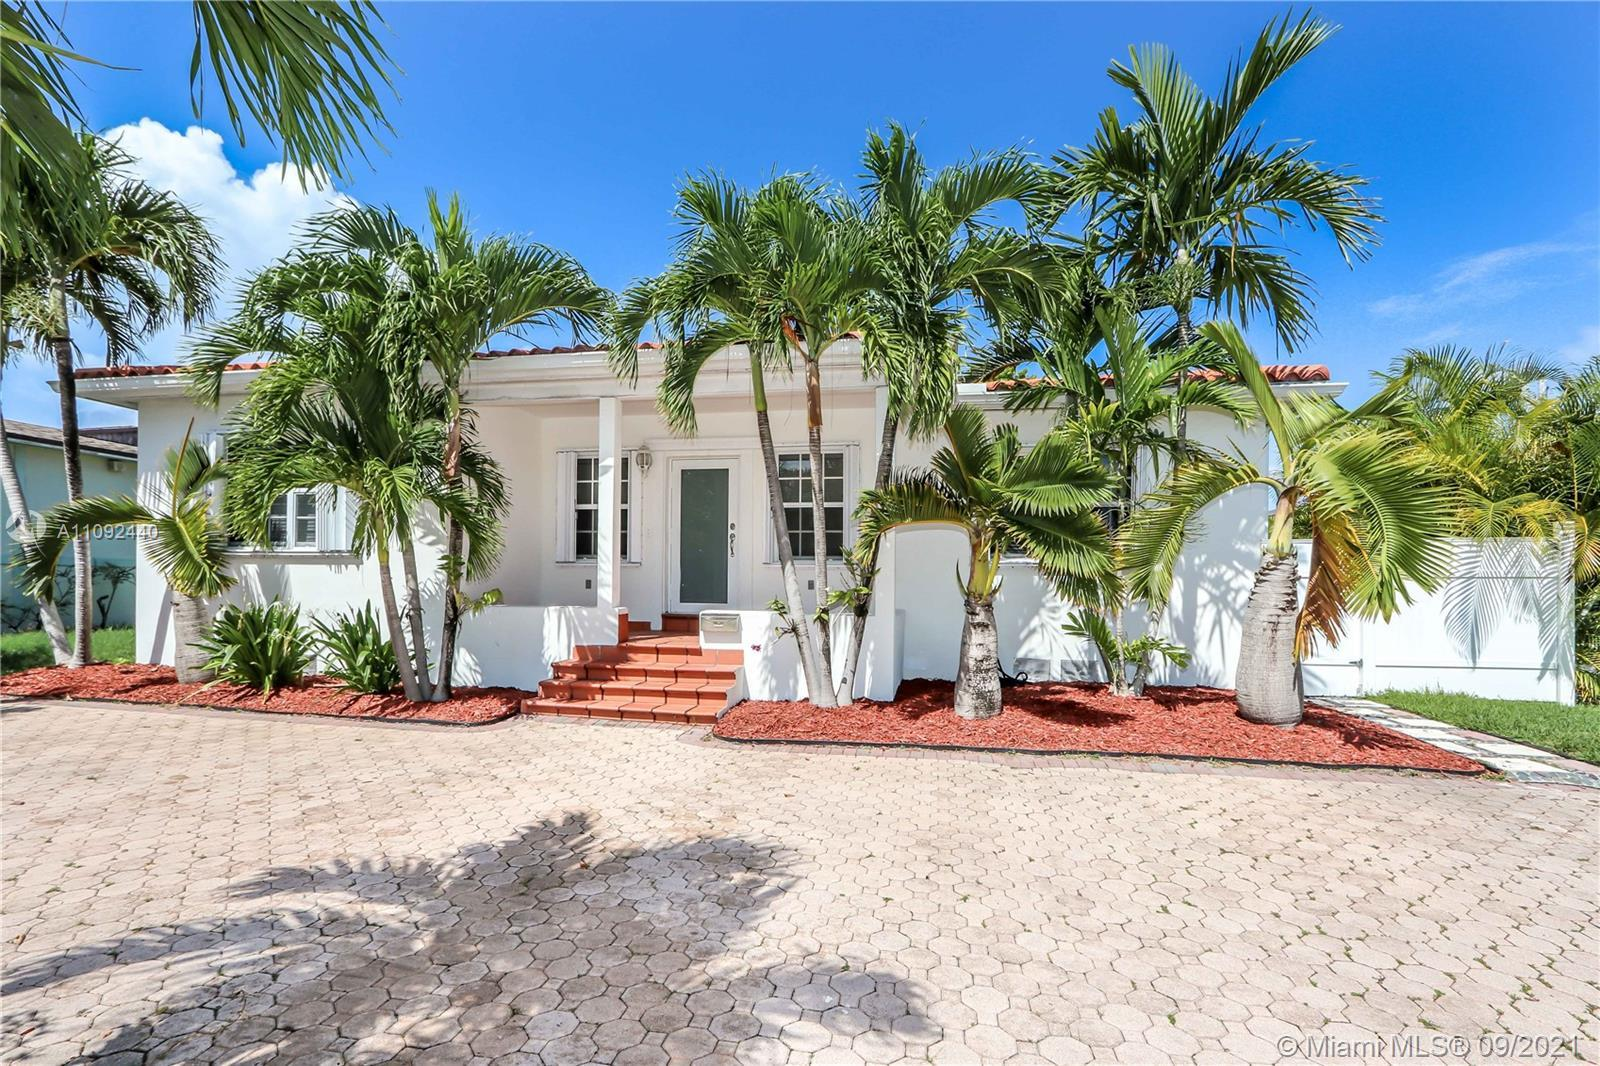 This Miami Beach house is only 1 mile from the beach and surrounded by multi million dollar waterfro